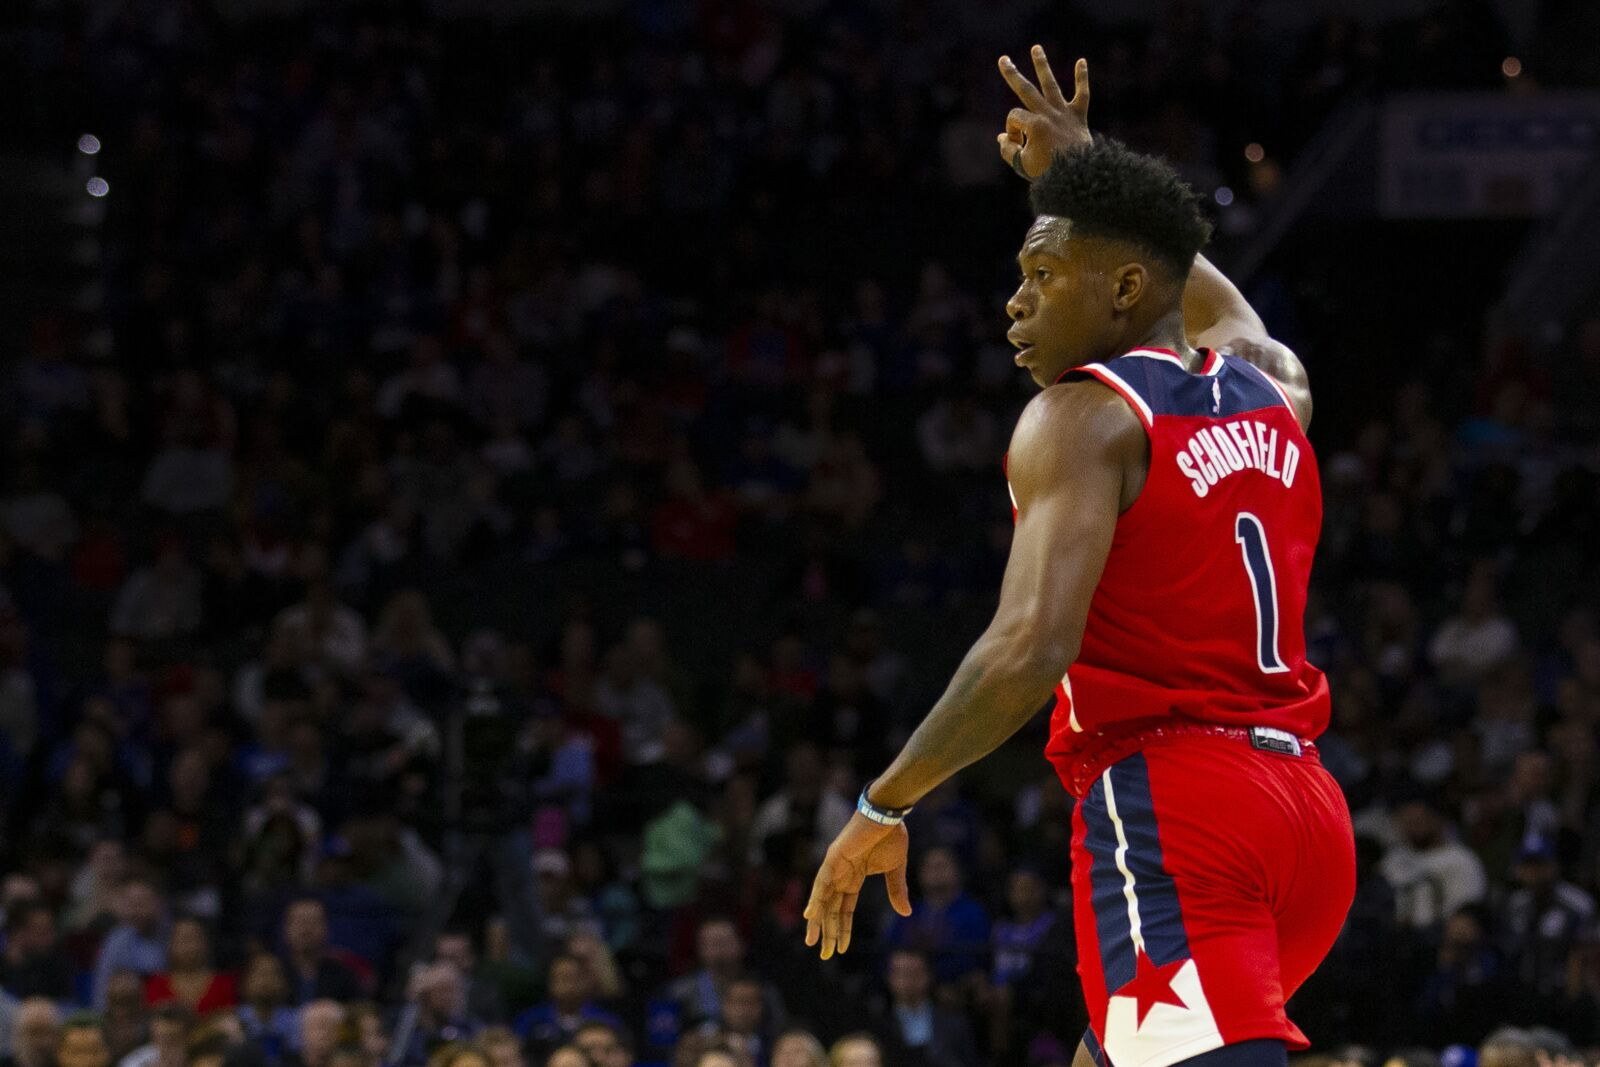 Washington Wizards: It's time to give Admiral Schofield more opportunity